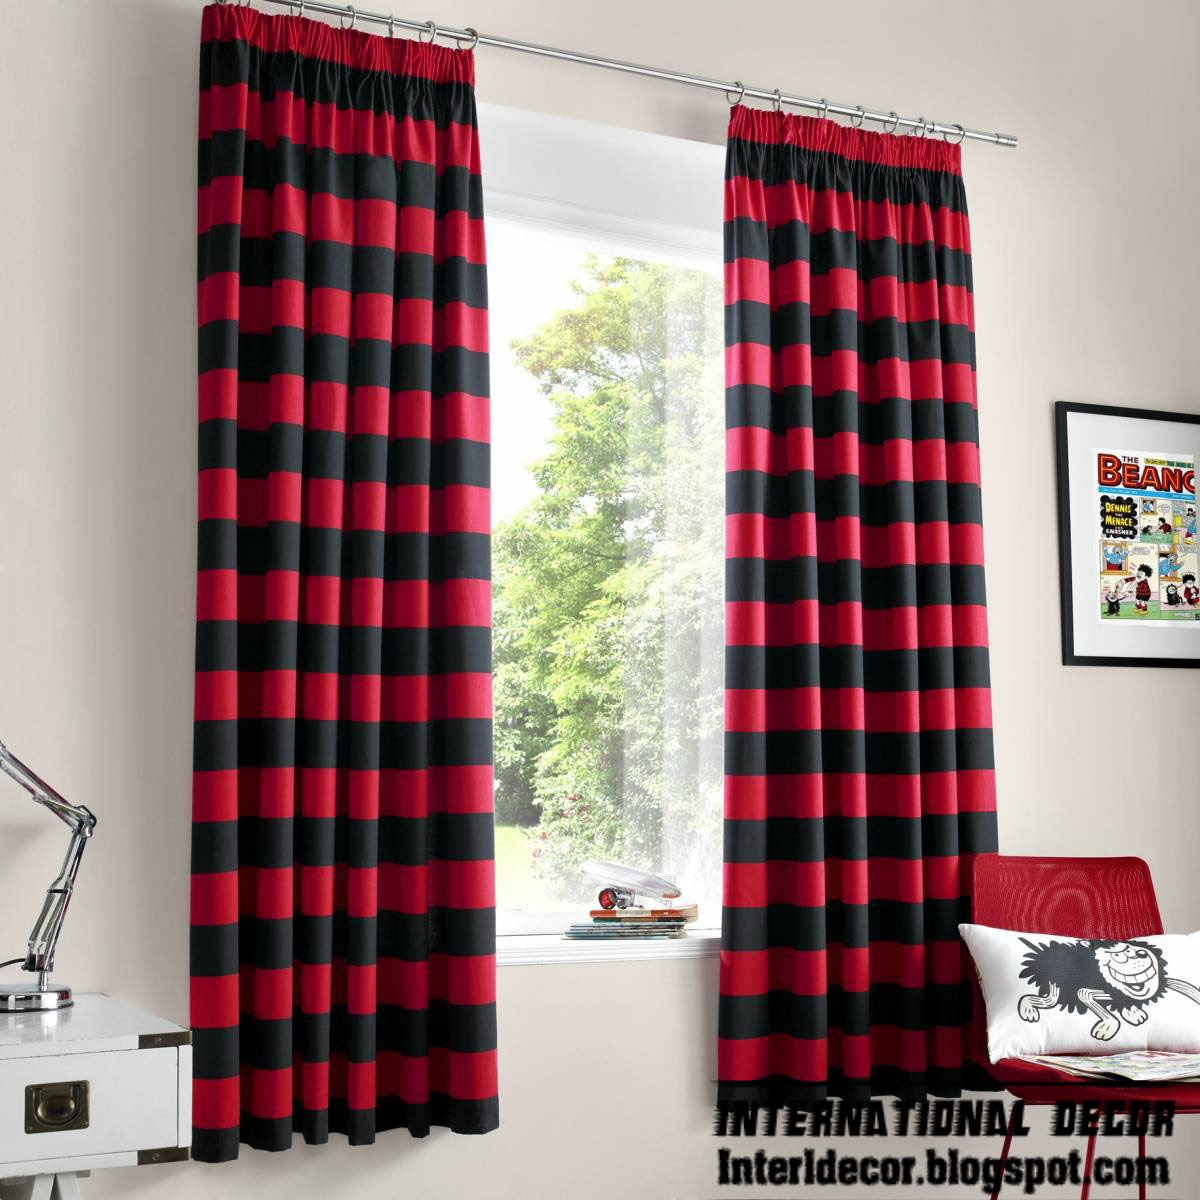 red curtains, red and black striped curtain and window treatments